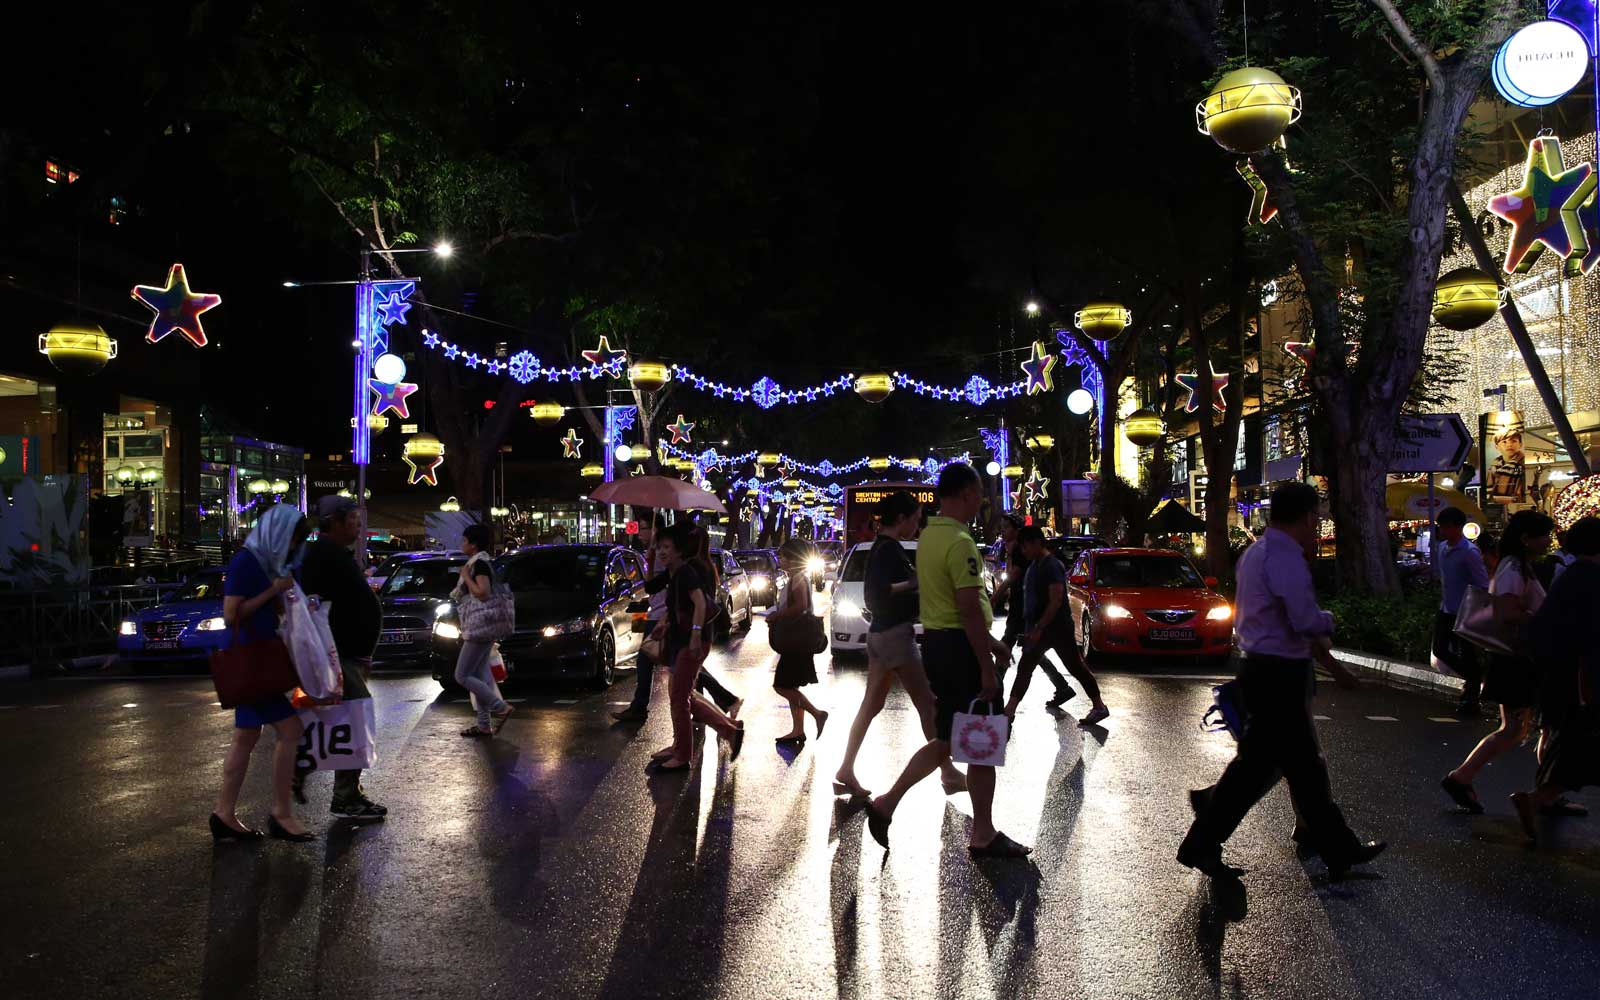 Disney is Turning This Singapore Street Into a Winter Wonderland for the Holidays